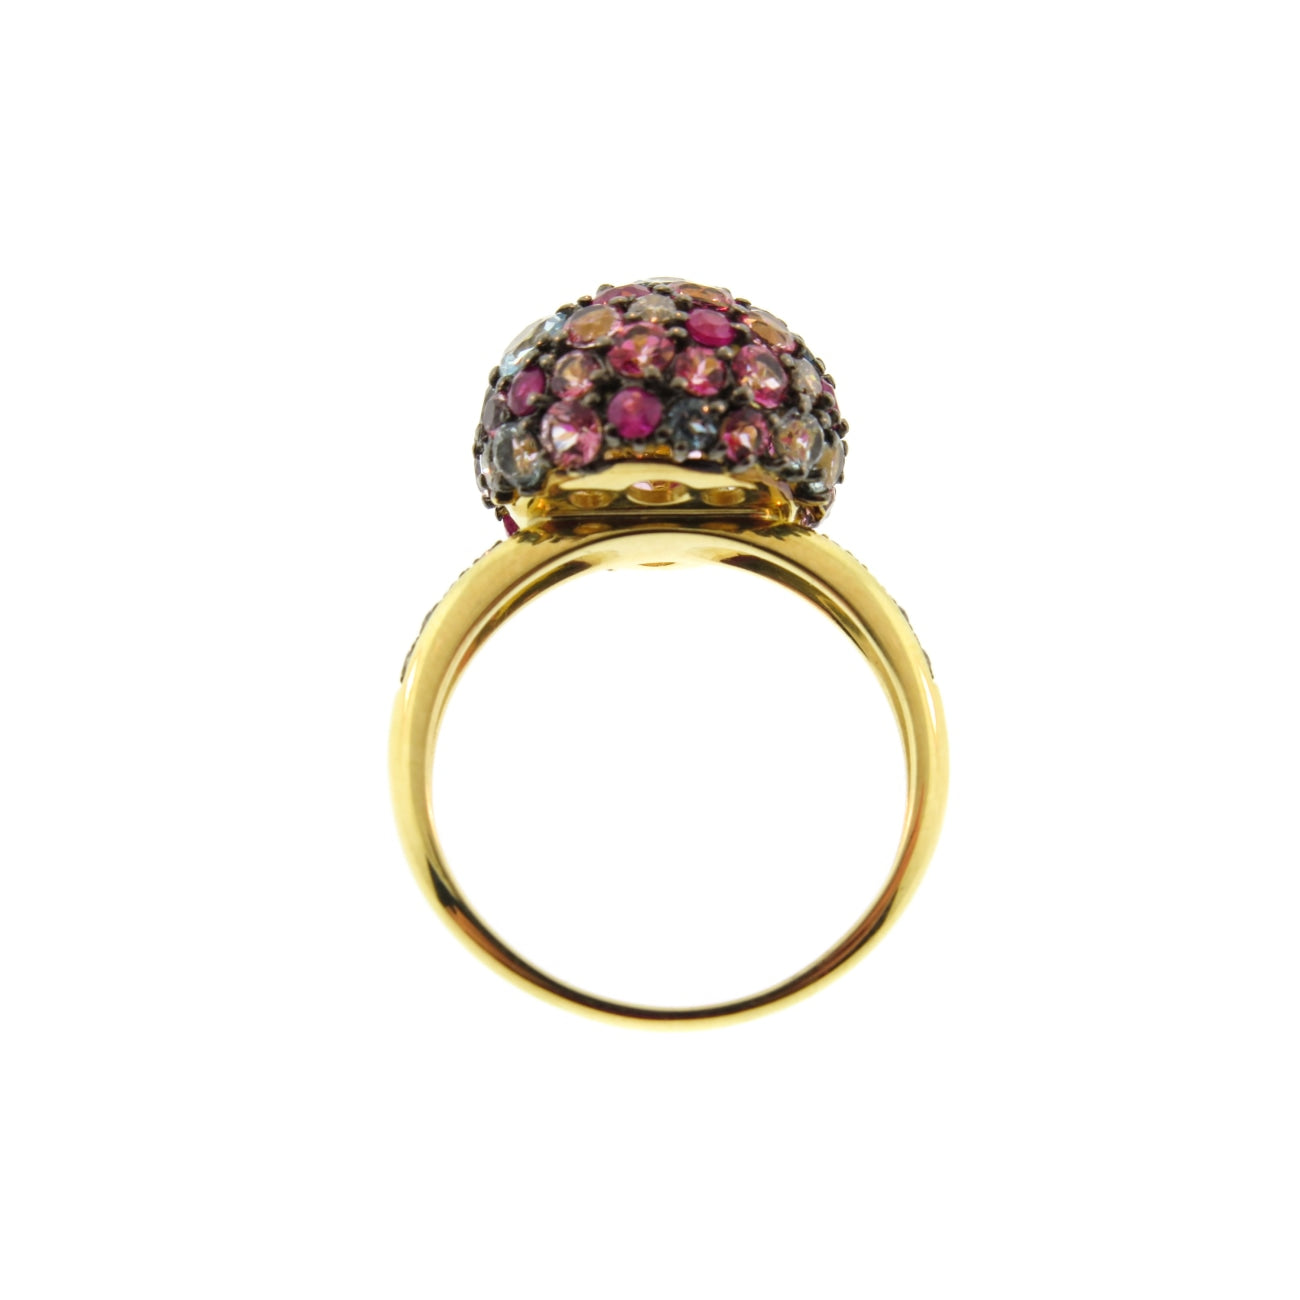 Brumani Jewelry - 18K Ruby Topaz and Sapphires Pave Ball Ring | Manfredi Jewels